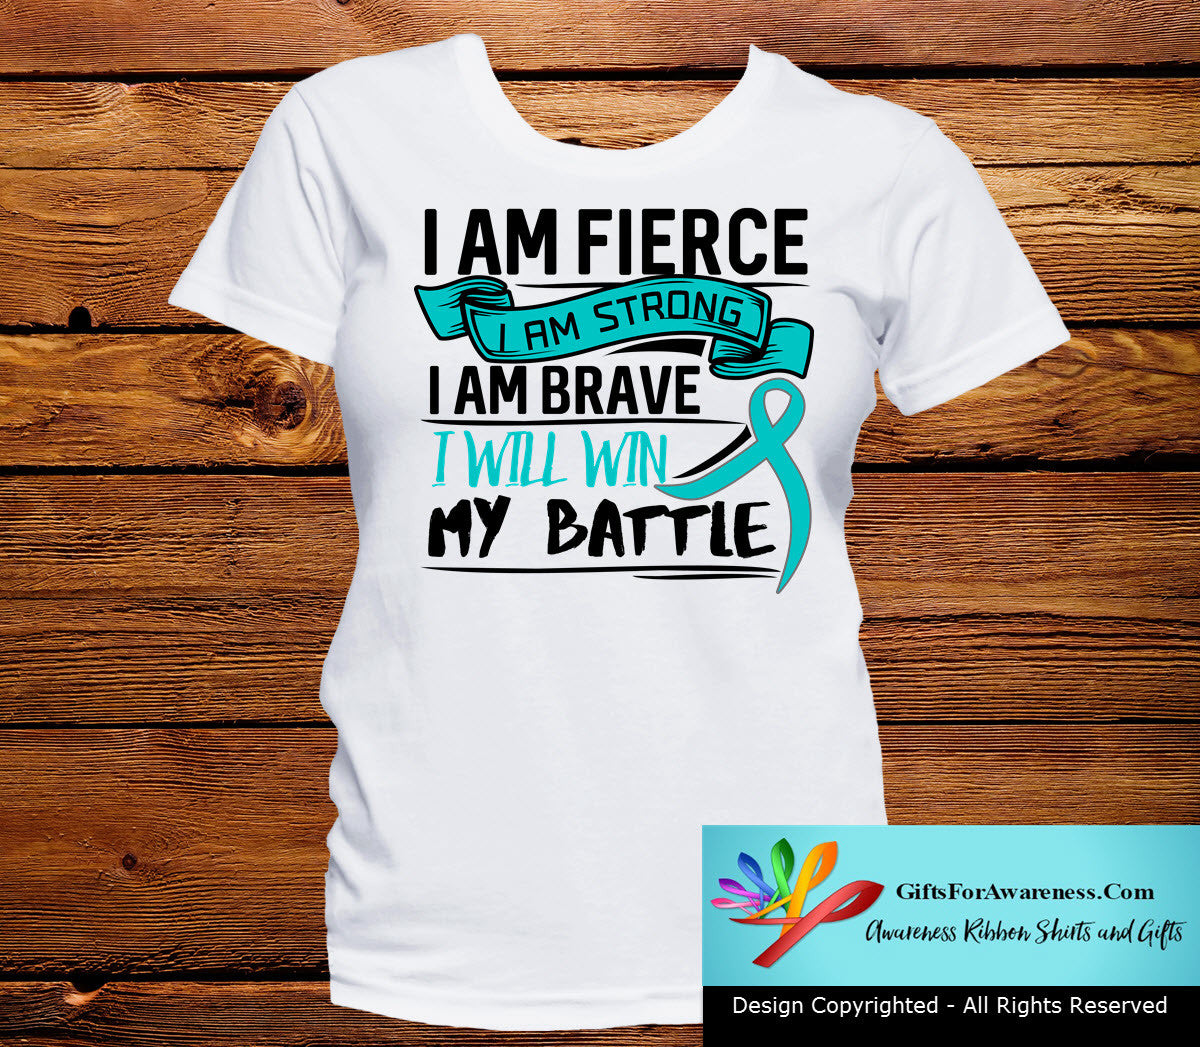 Ovarian Cancer I Am Fierce Strong and Brave Shirts - GiftsForAwareness